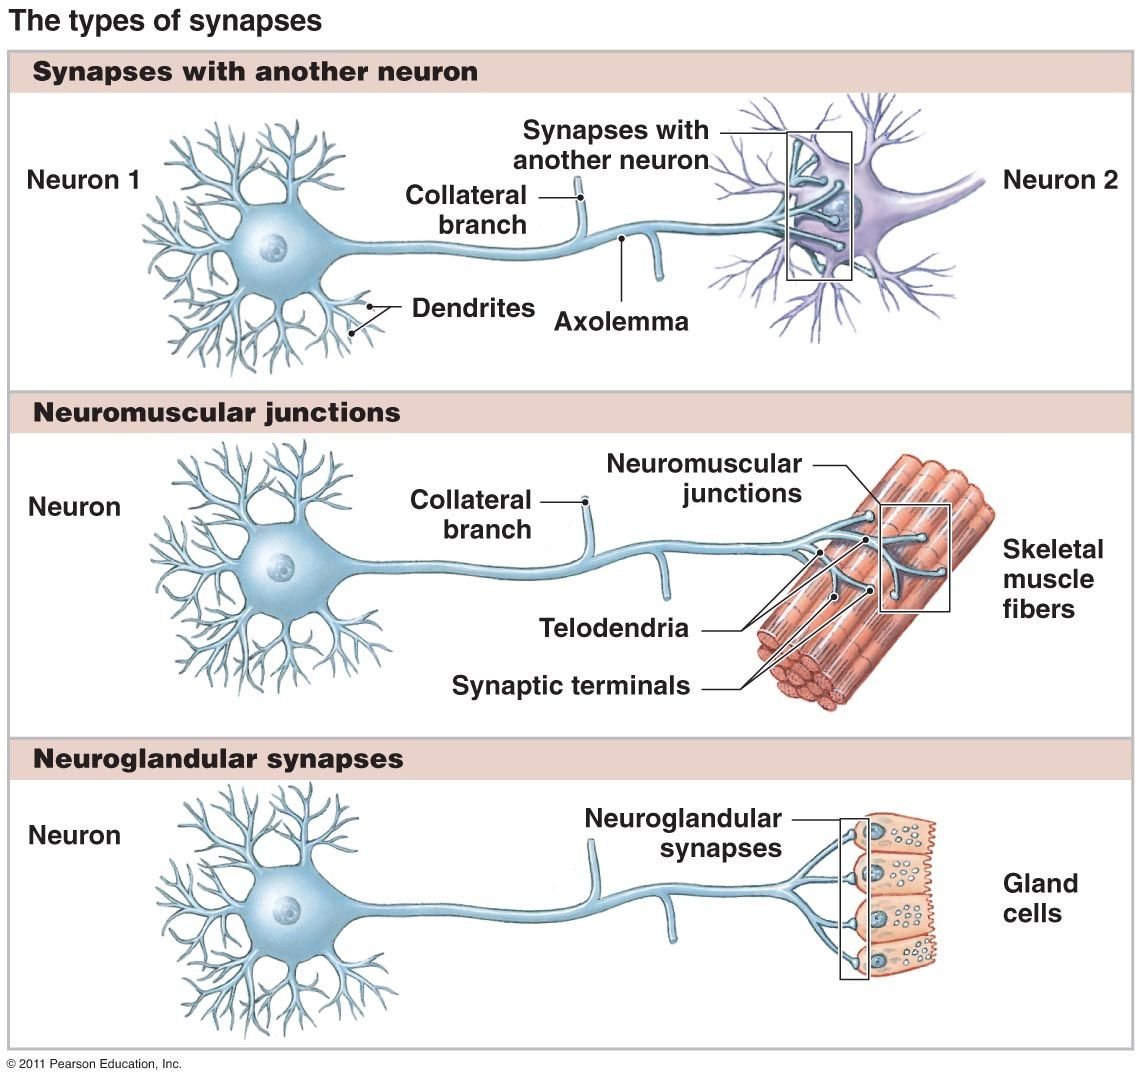 Types Of Synapses With Images